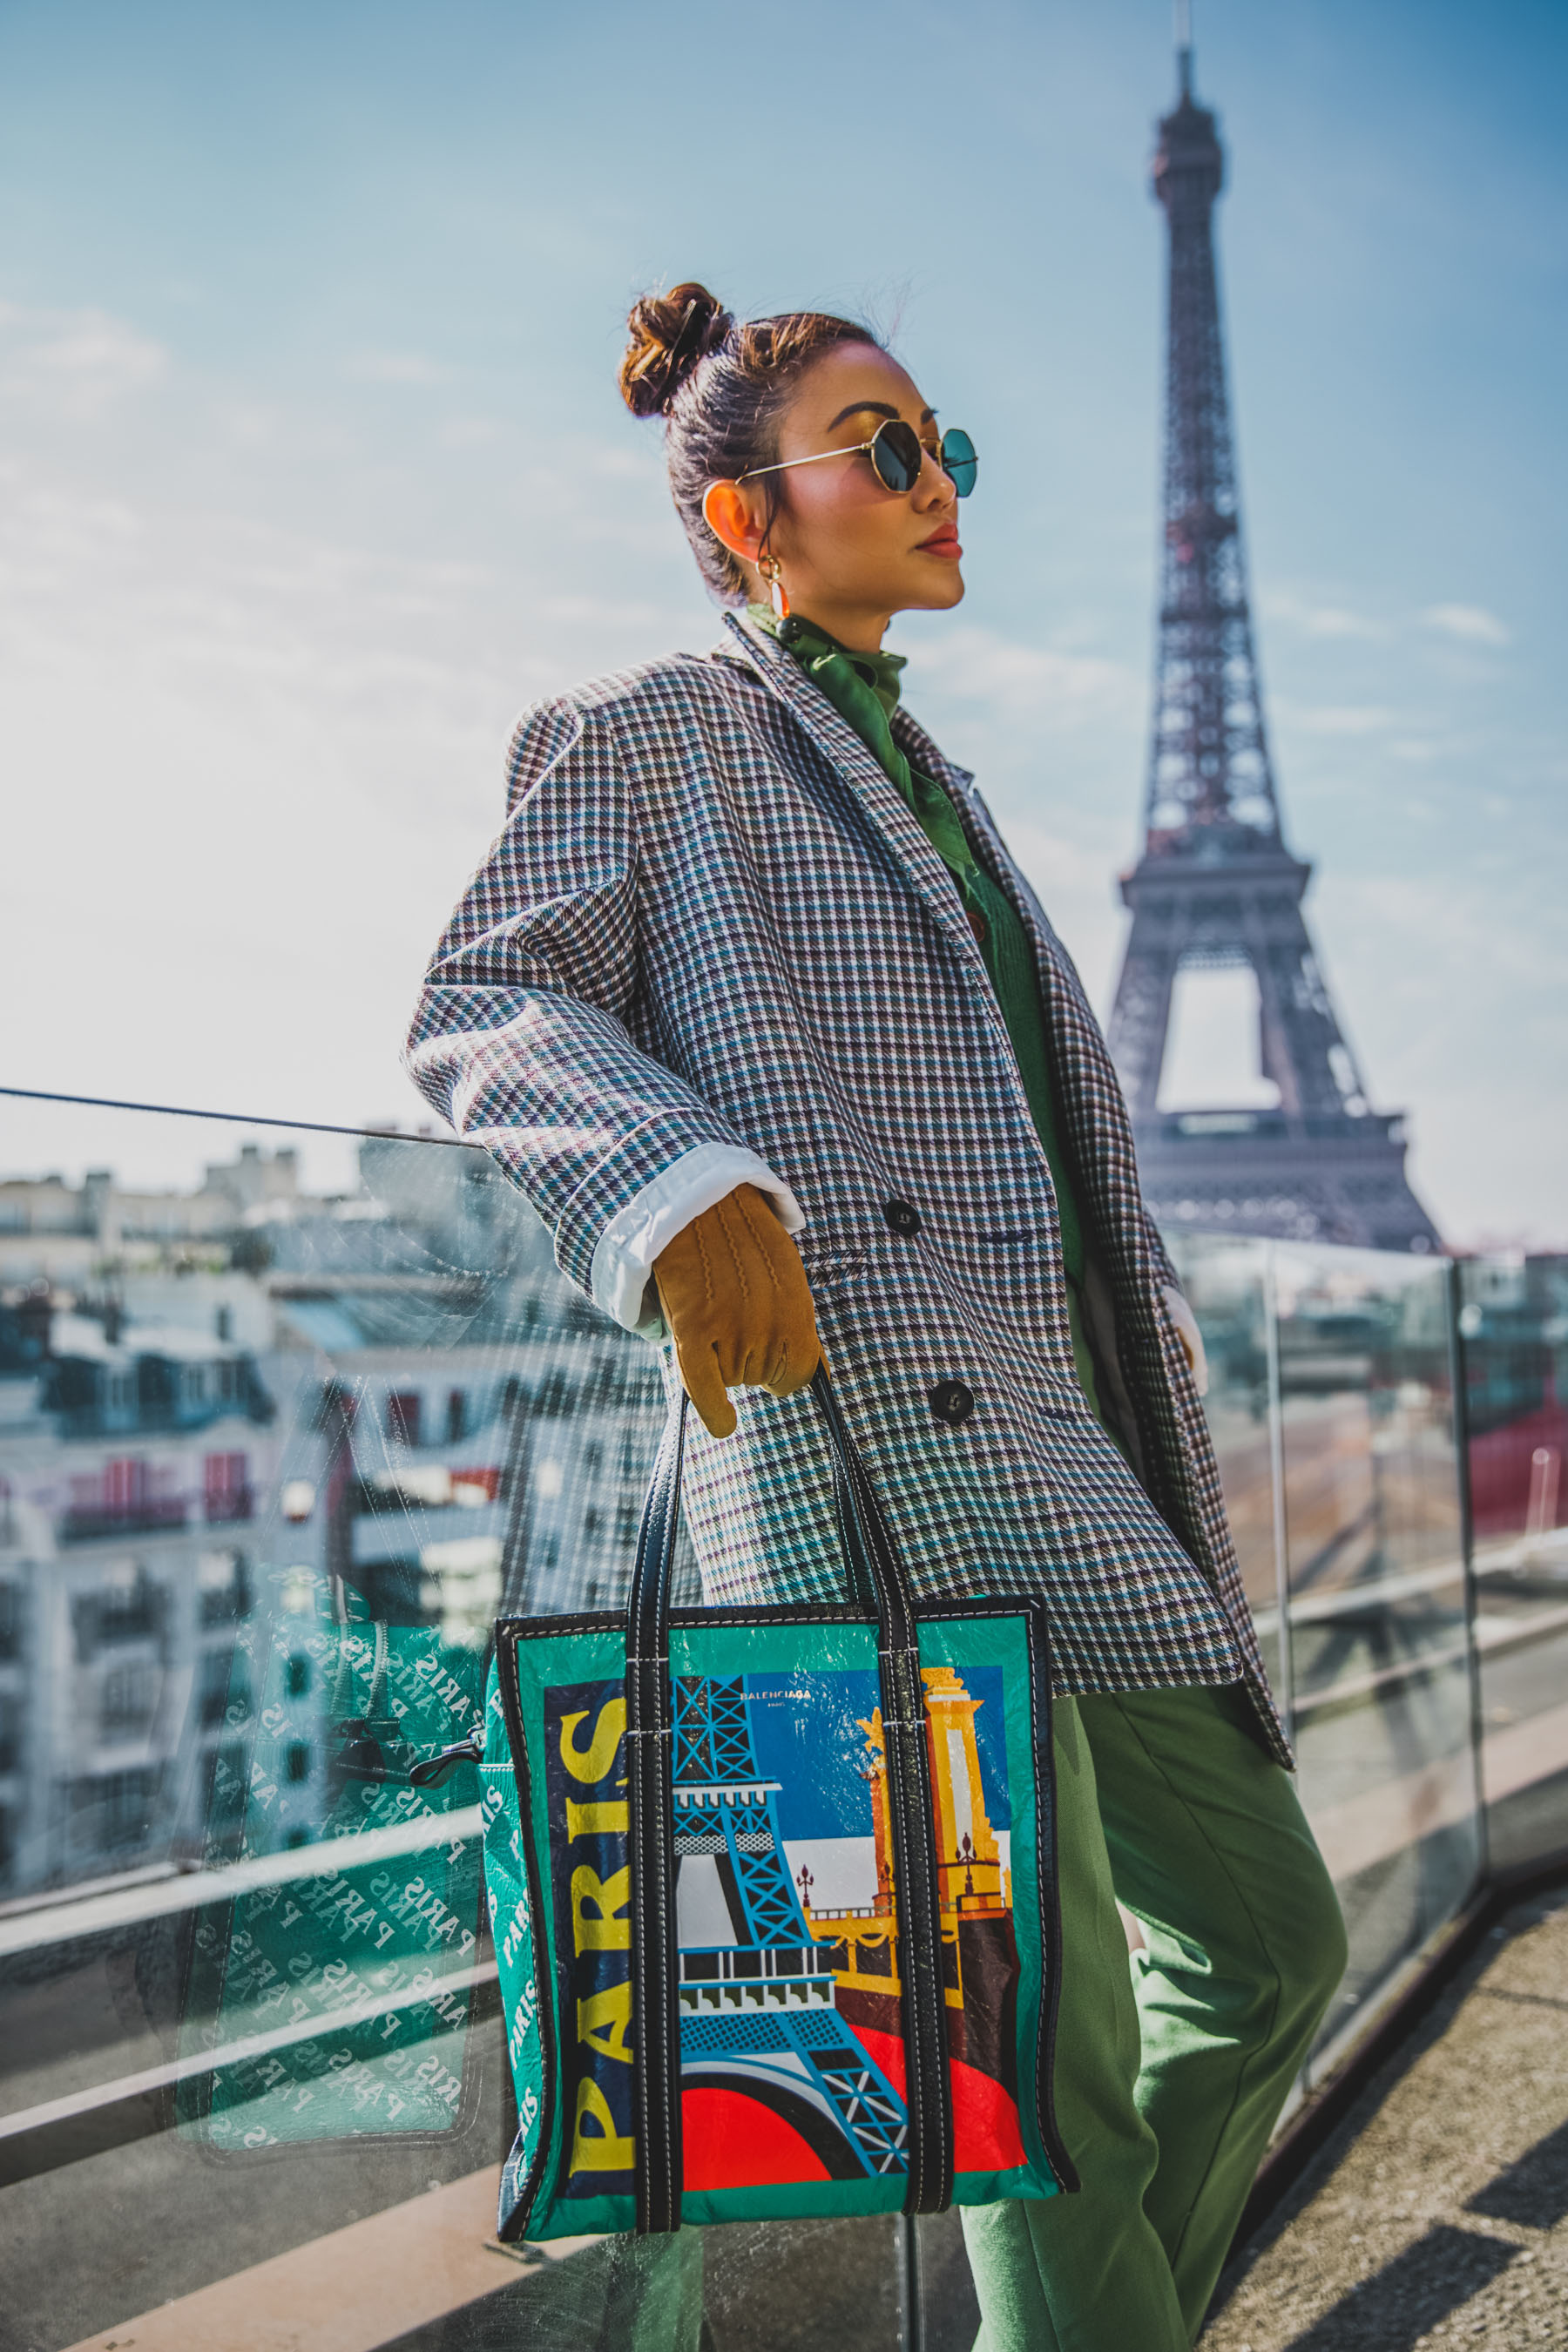 2018 handbag trend - balenciaga paris shopper tote, mytheresa bags, pfw street style, green pants with plaid blazer // Notjessfashion.com